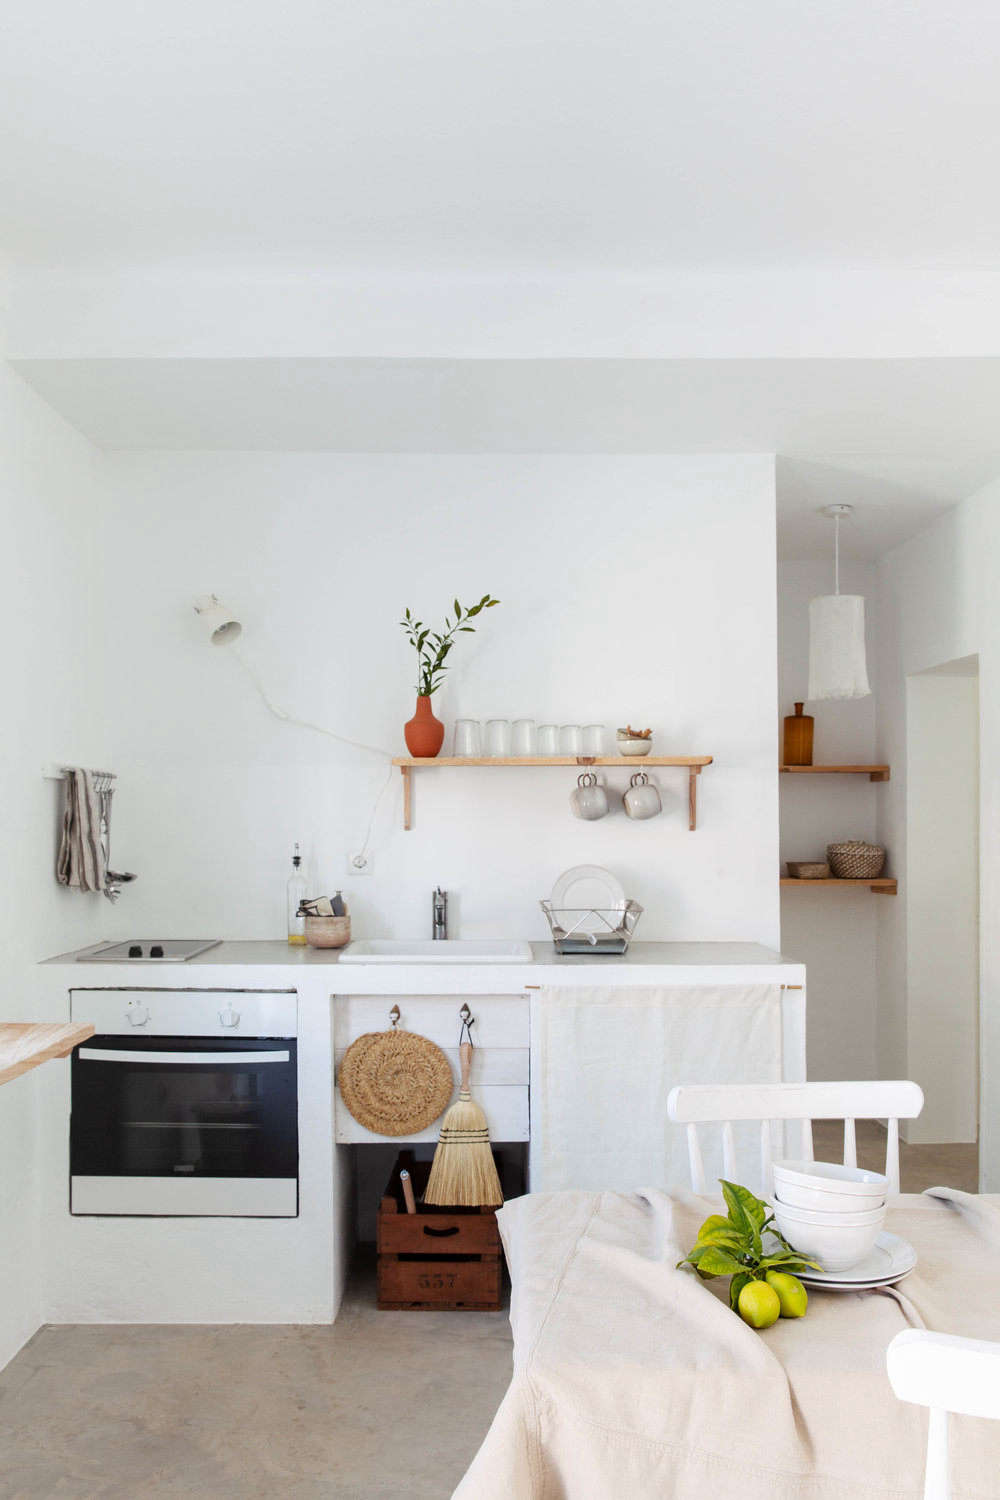 In another simple kitchen, a cabinet is fitted with linen skirt. Also on hand: a hand broom and woven trivet.